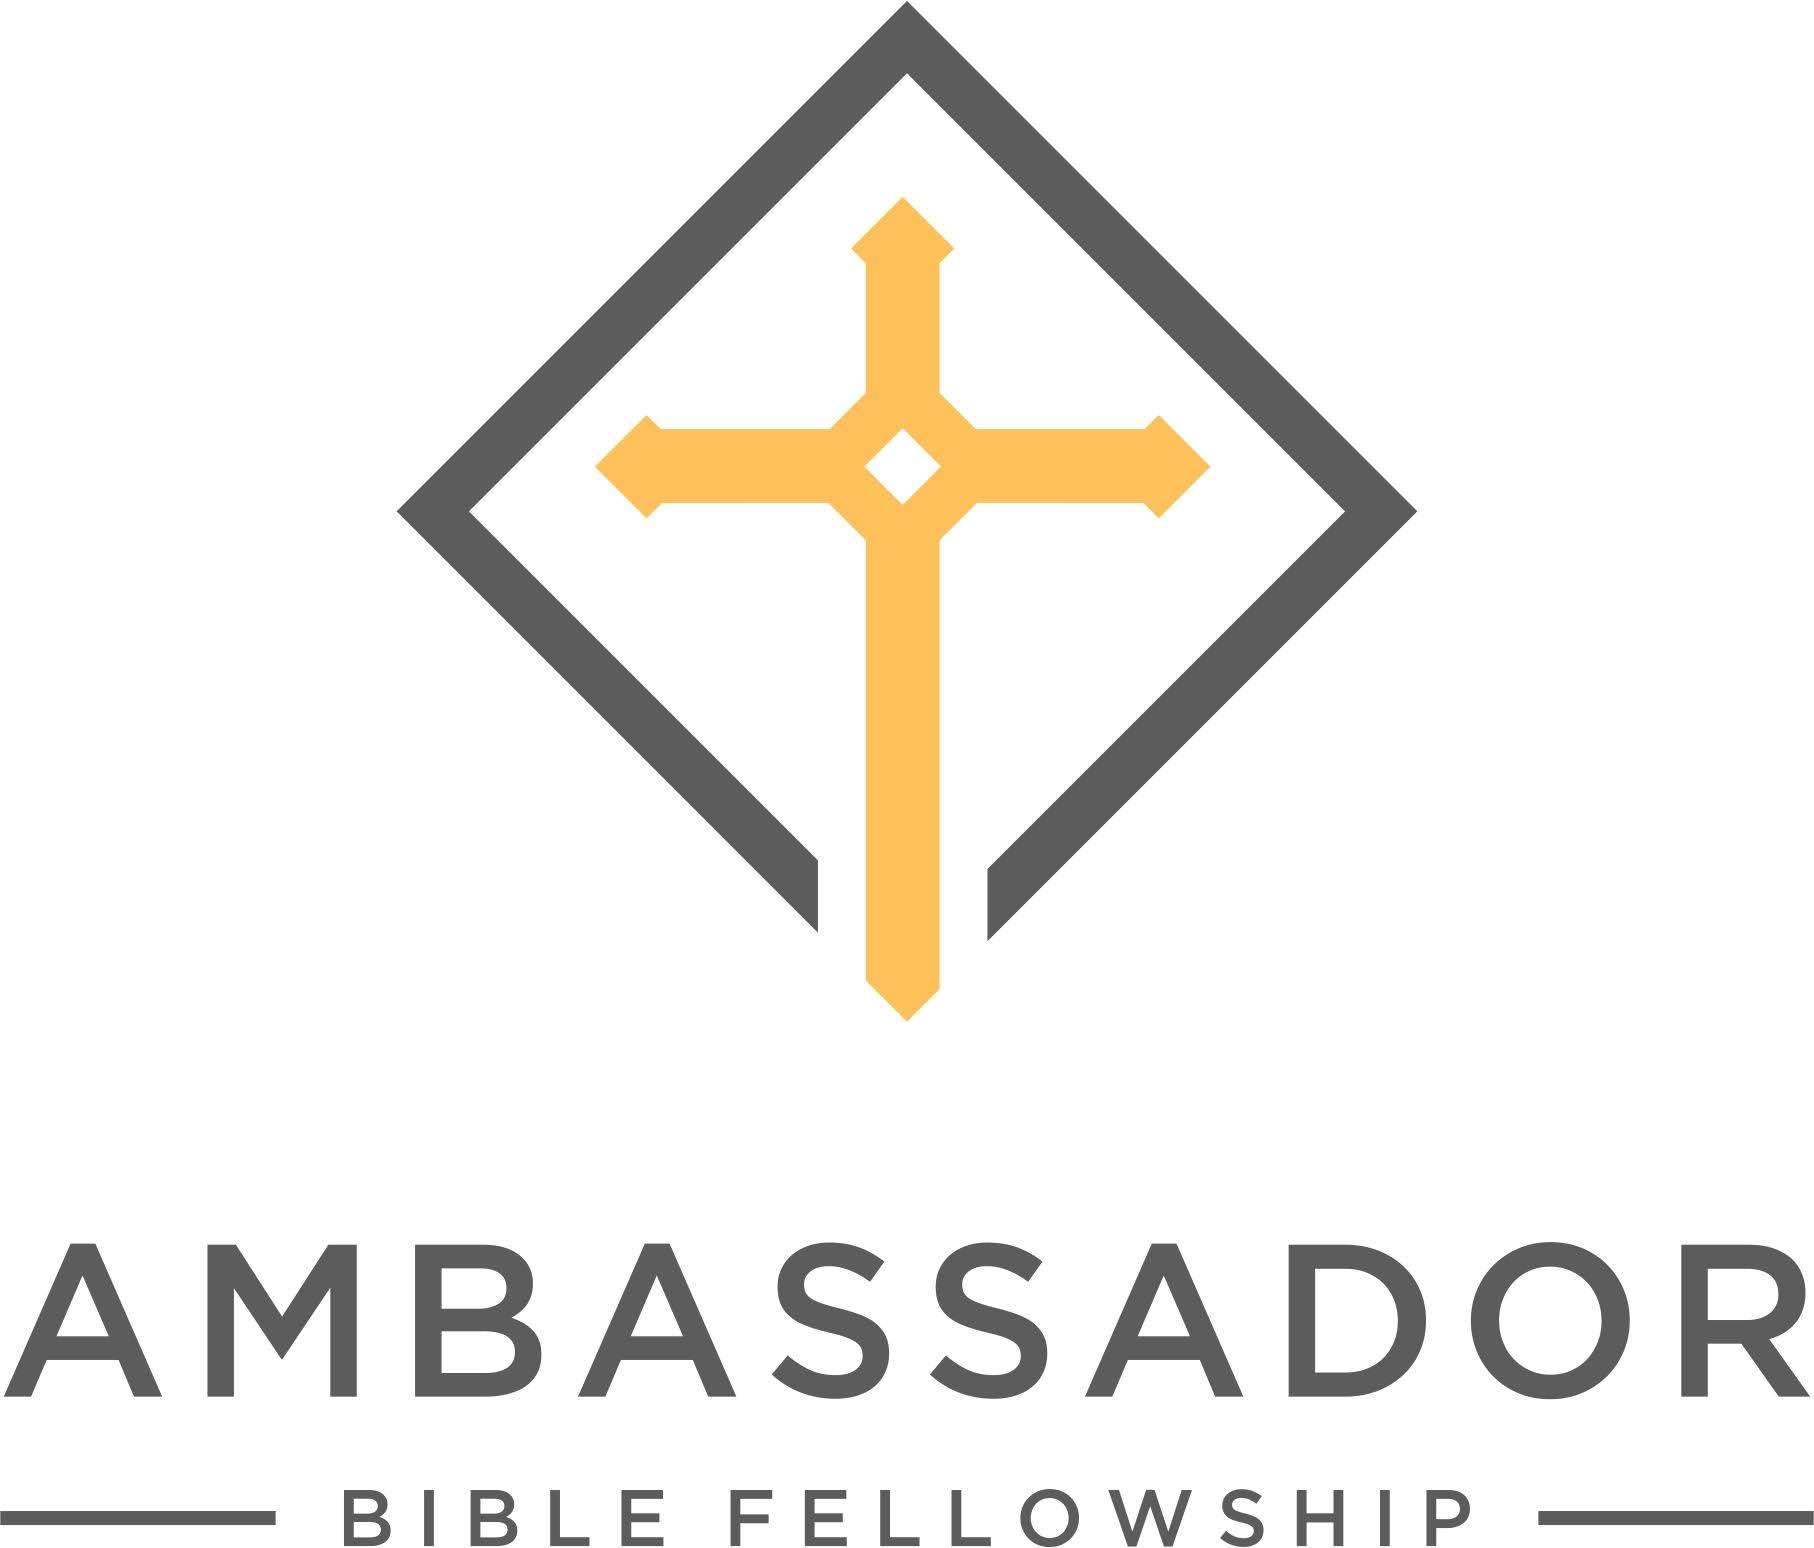 Ambassador Bible Fellowship